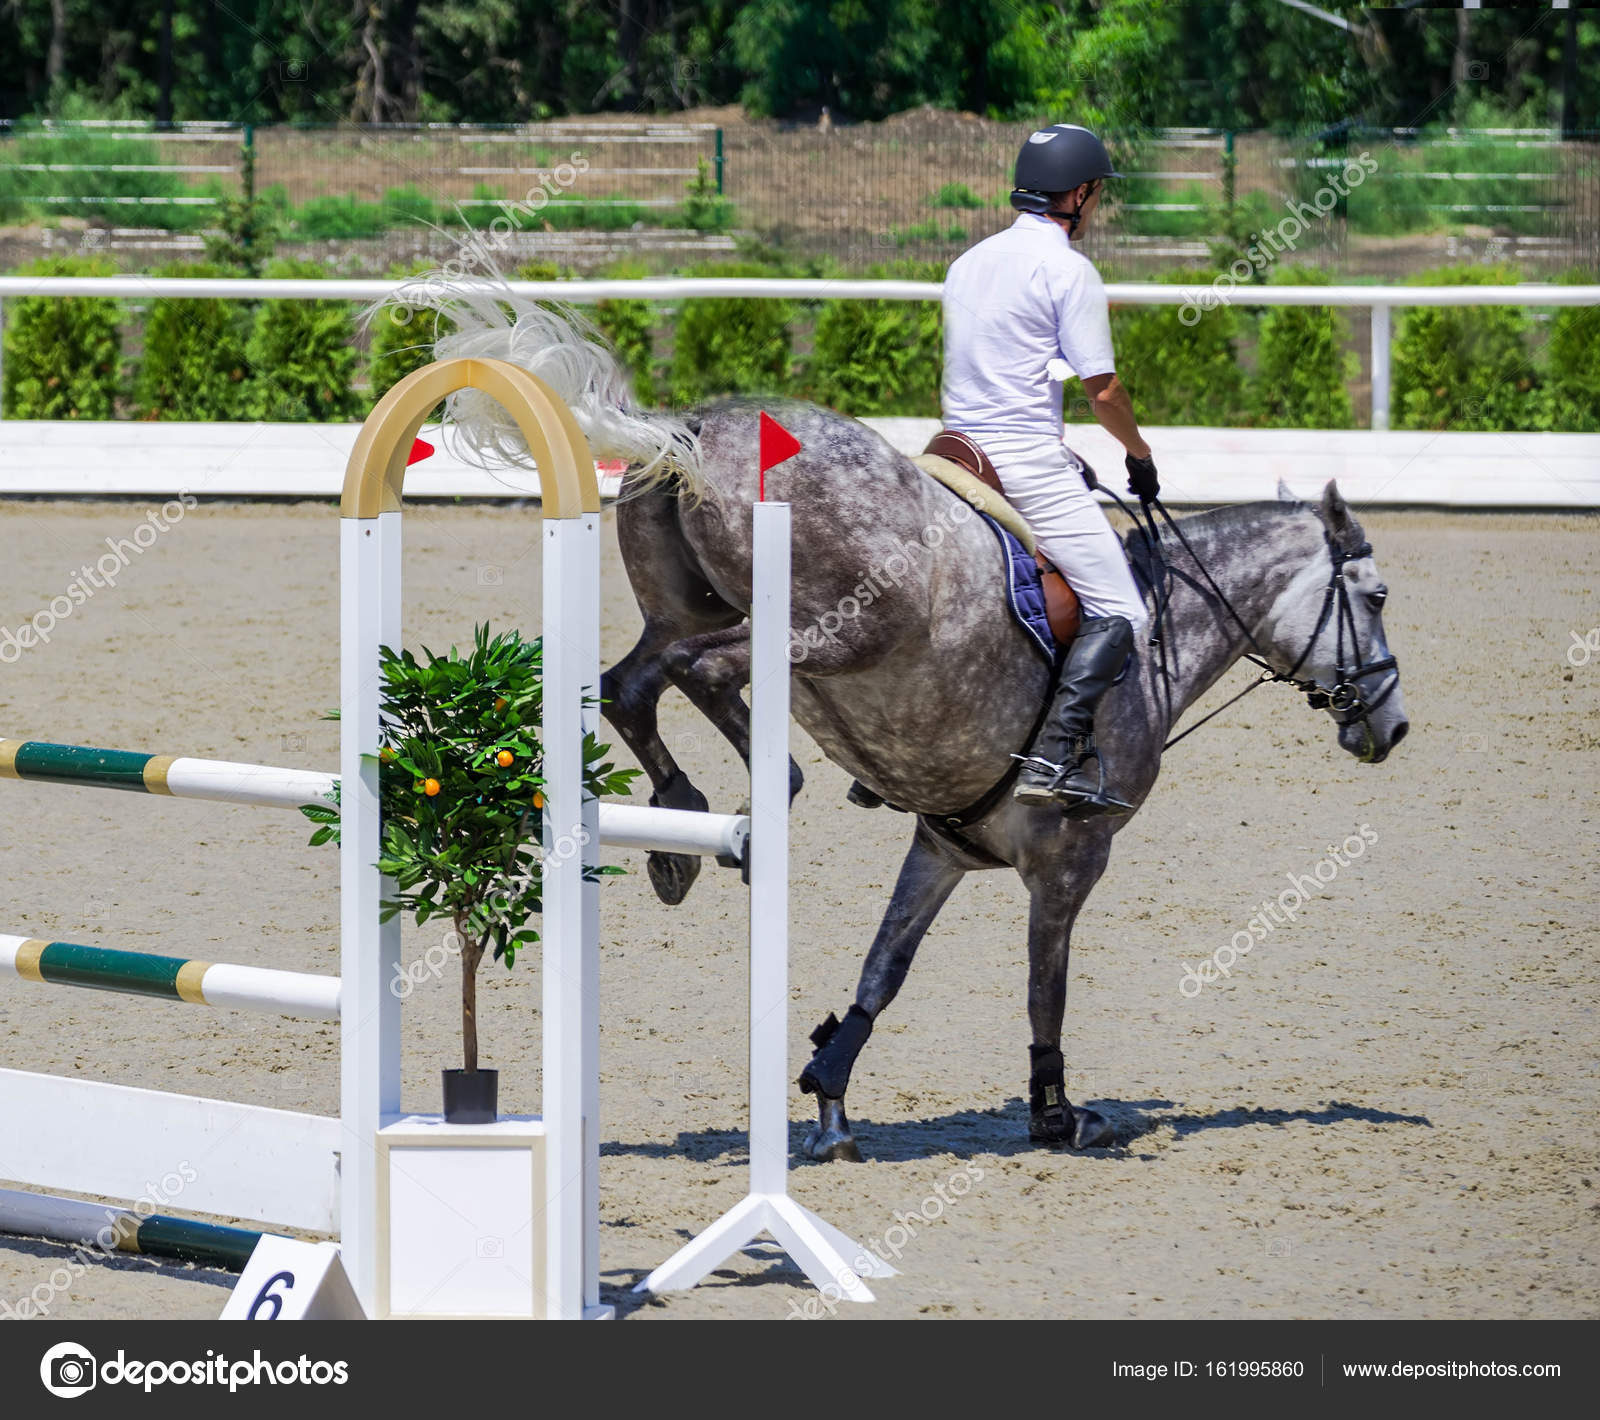 Rider On Gray Horse In Jumping Show Equestrian Sports Stock Photo C Martanovak 161995860